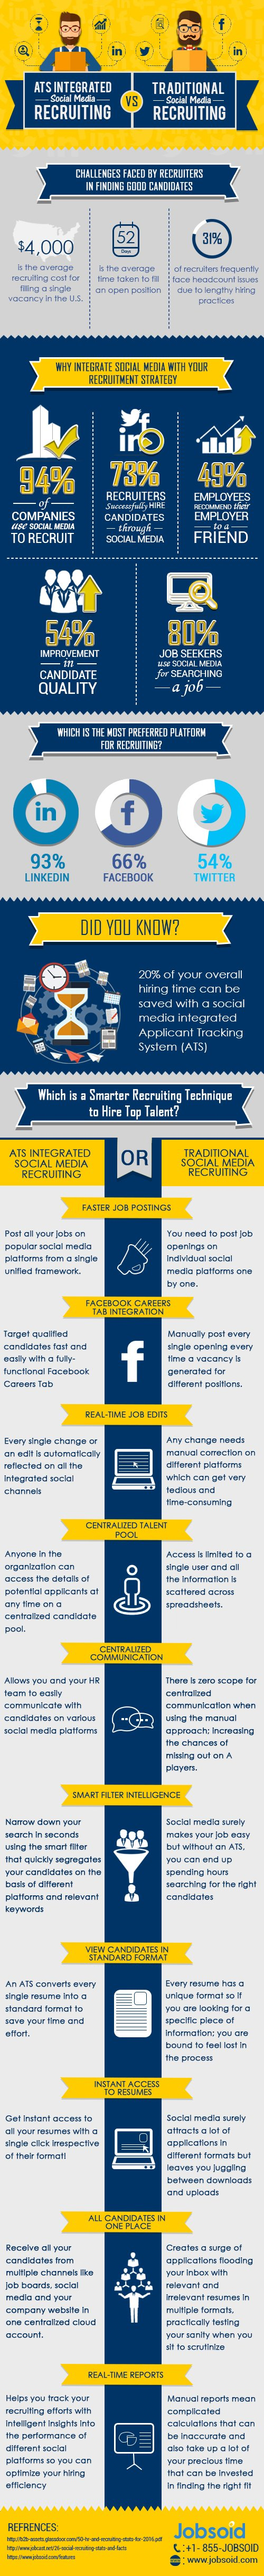 Social Media Recruiting Vs. Traditional Recruiting - Infographic